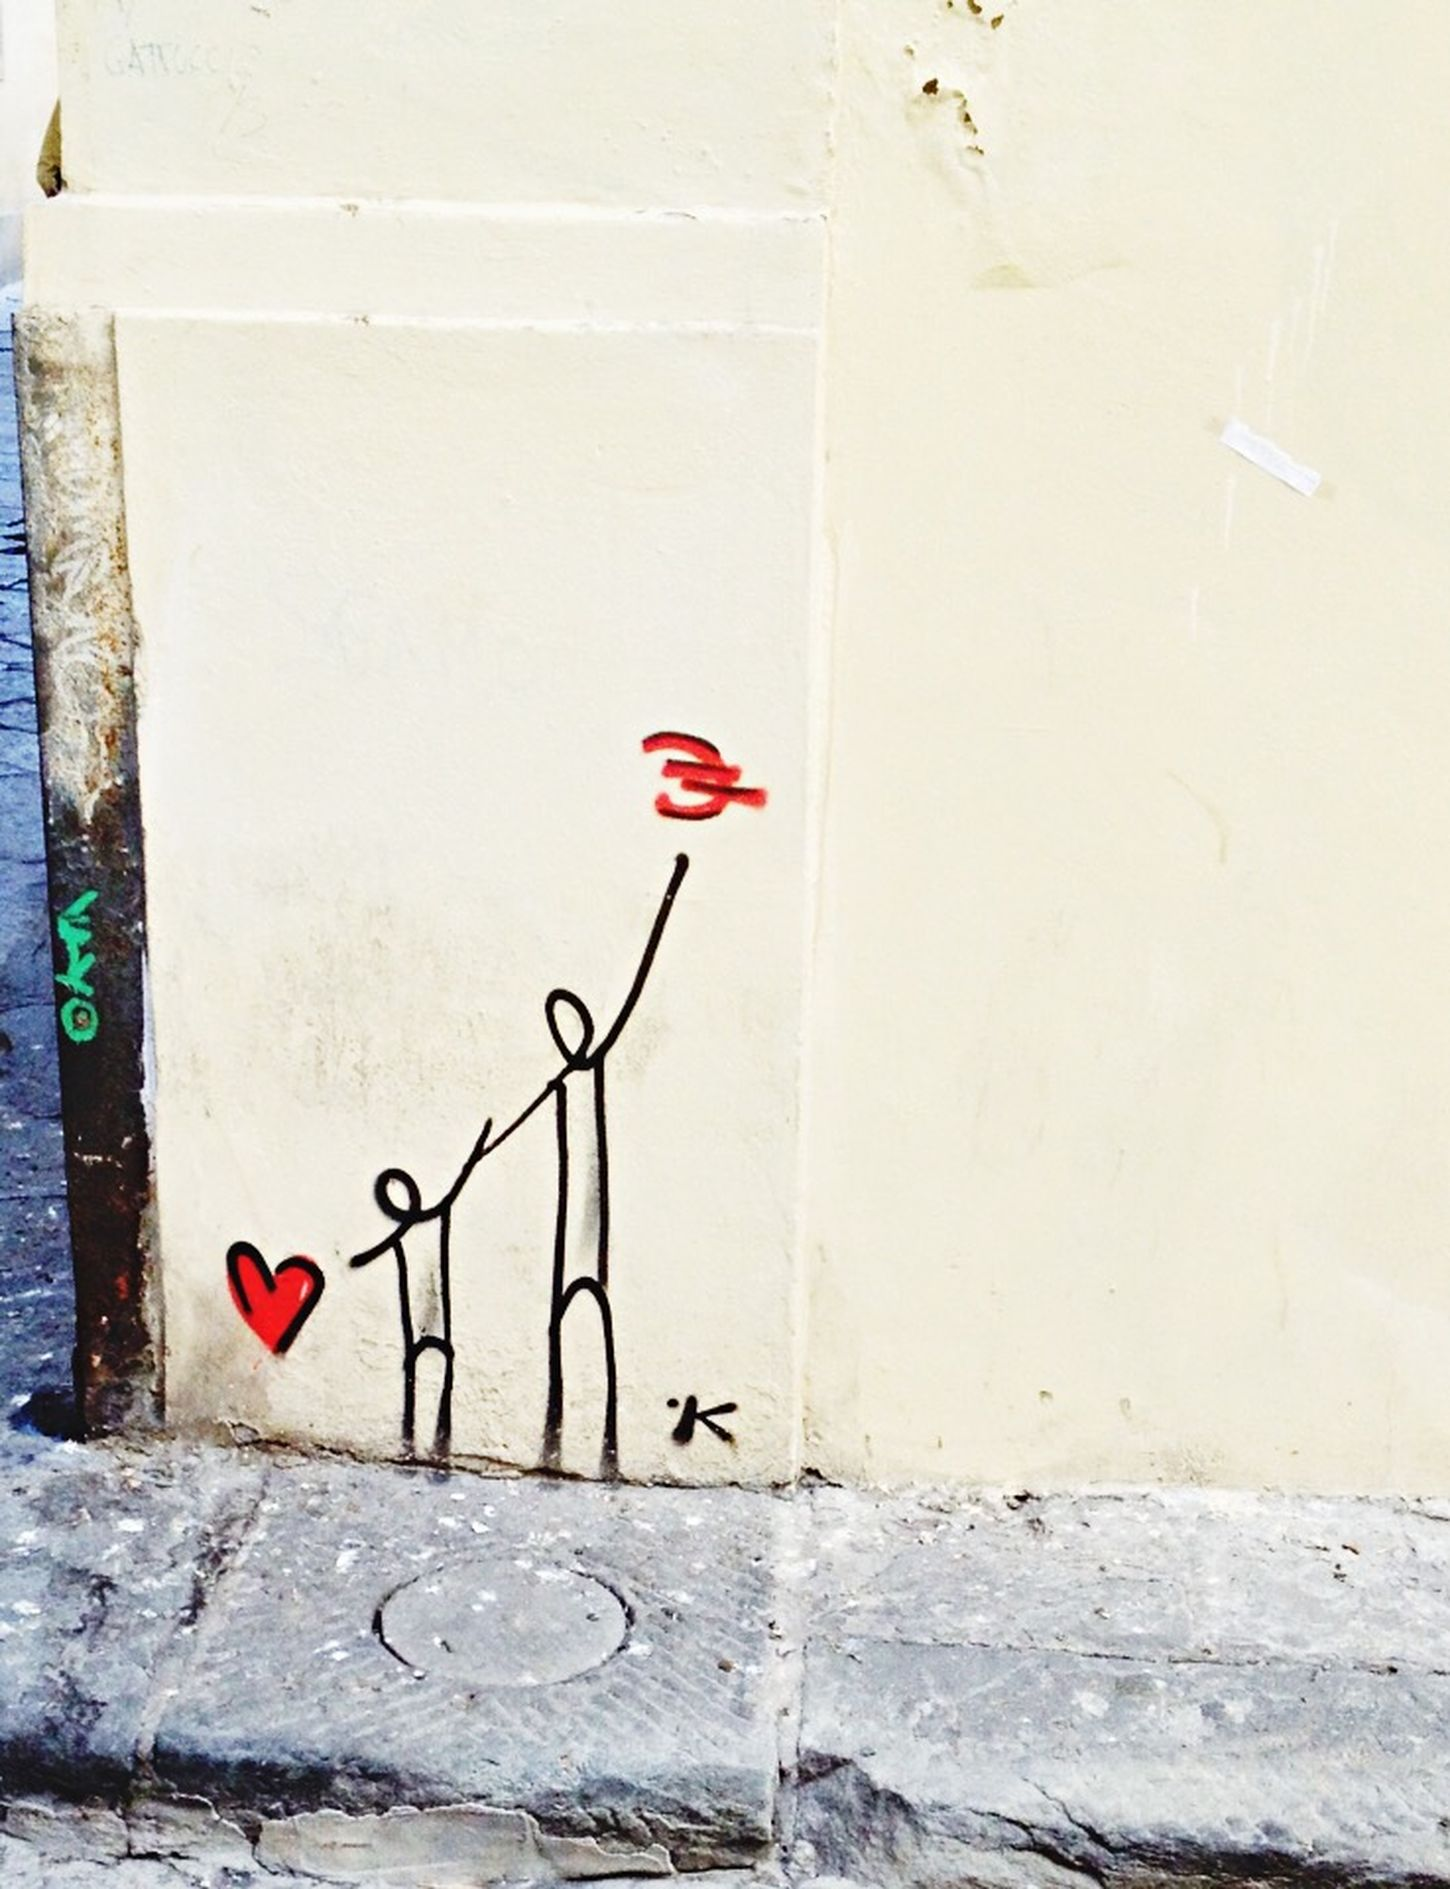 Streetart Graffiti Don't Forget About Love It's Not About The Money Italy Firenze ❤️